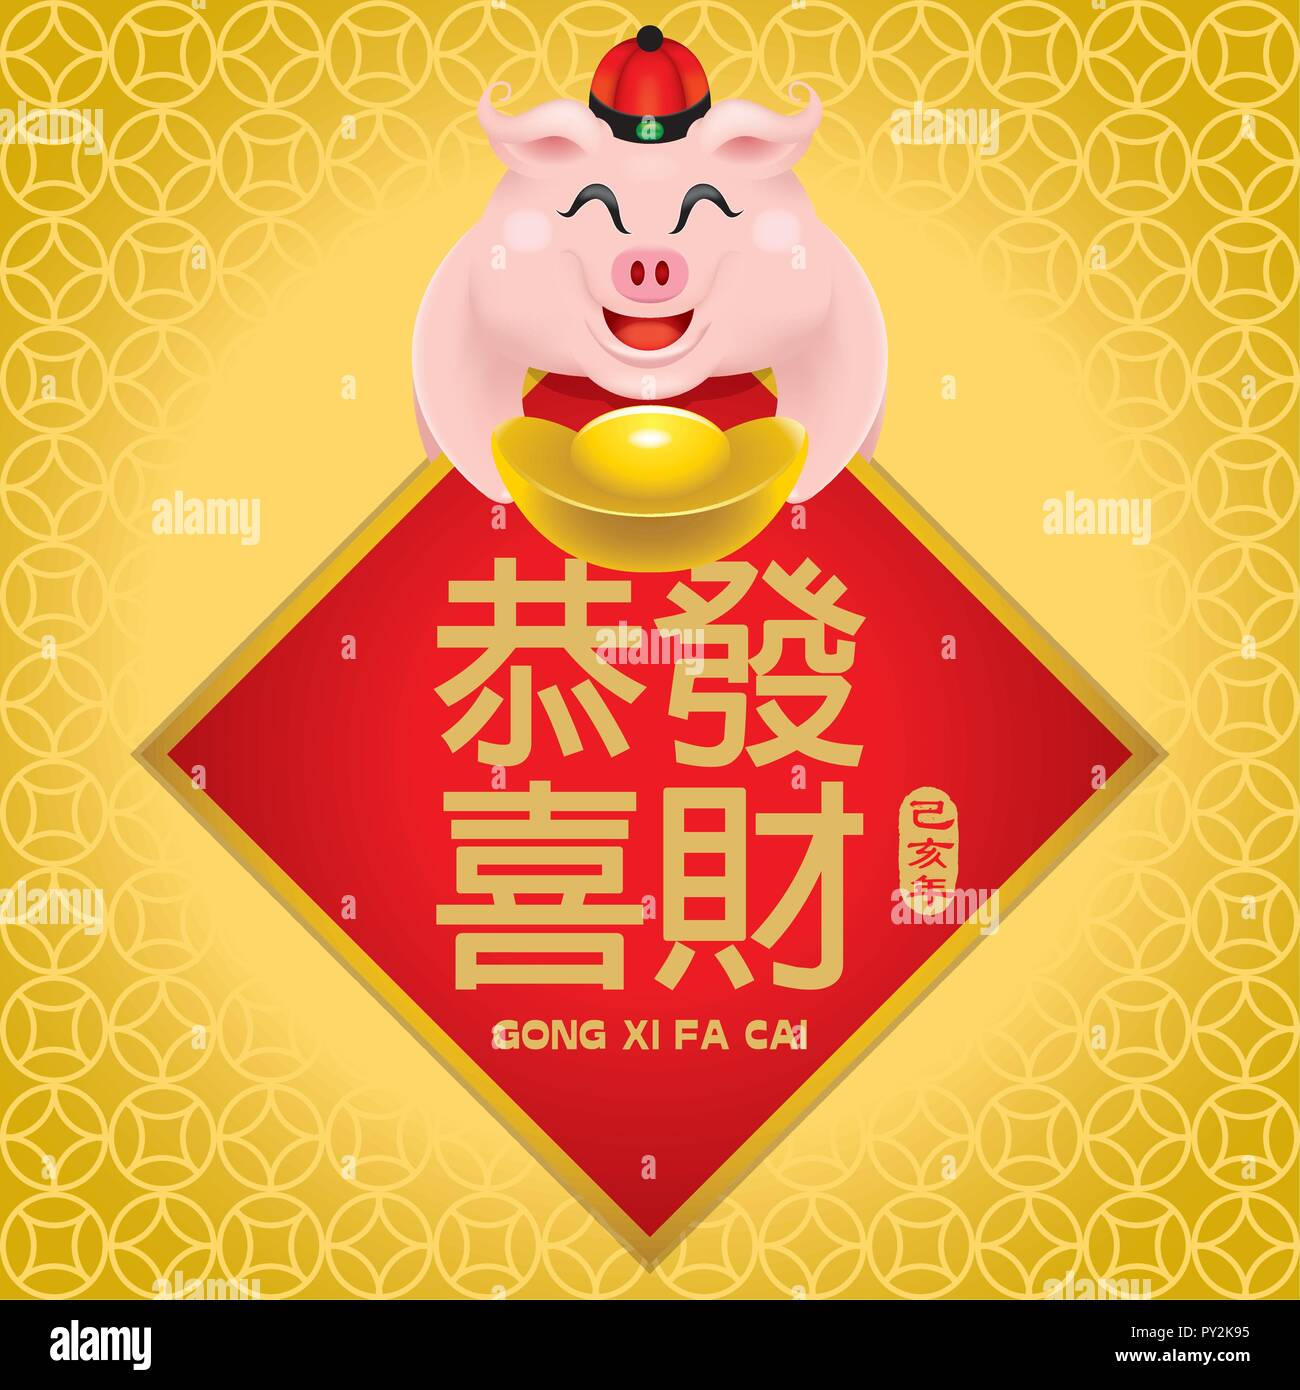 Cute little pig's image for Chinese New Year 2019, also the year of the pig. Caption: Wishing you get wealth. - Stock Vector